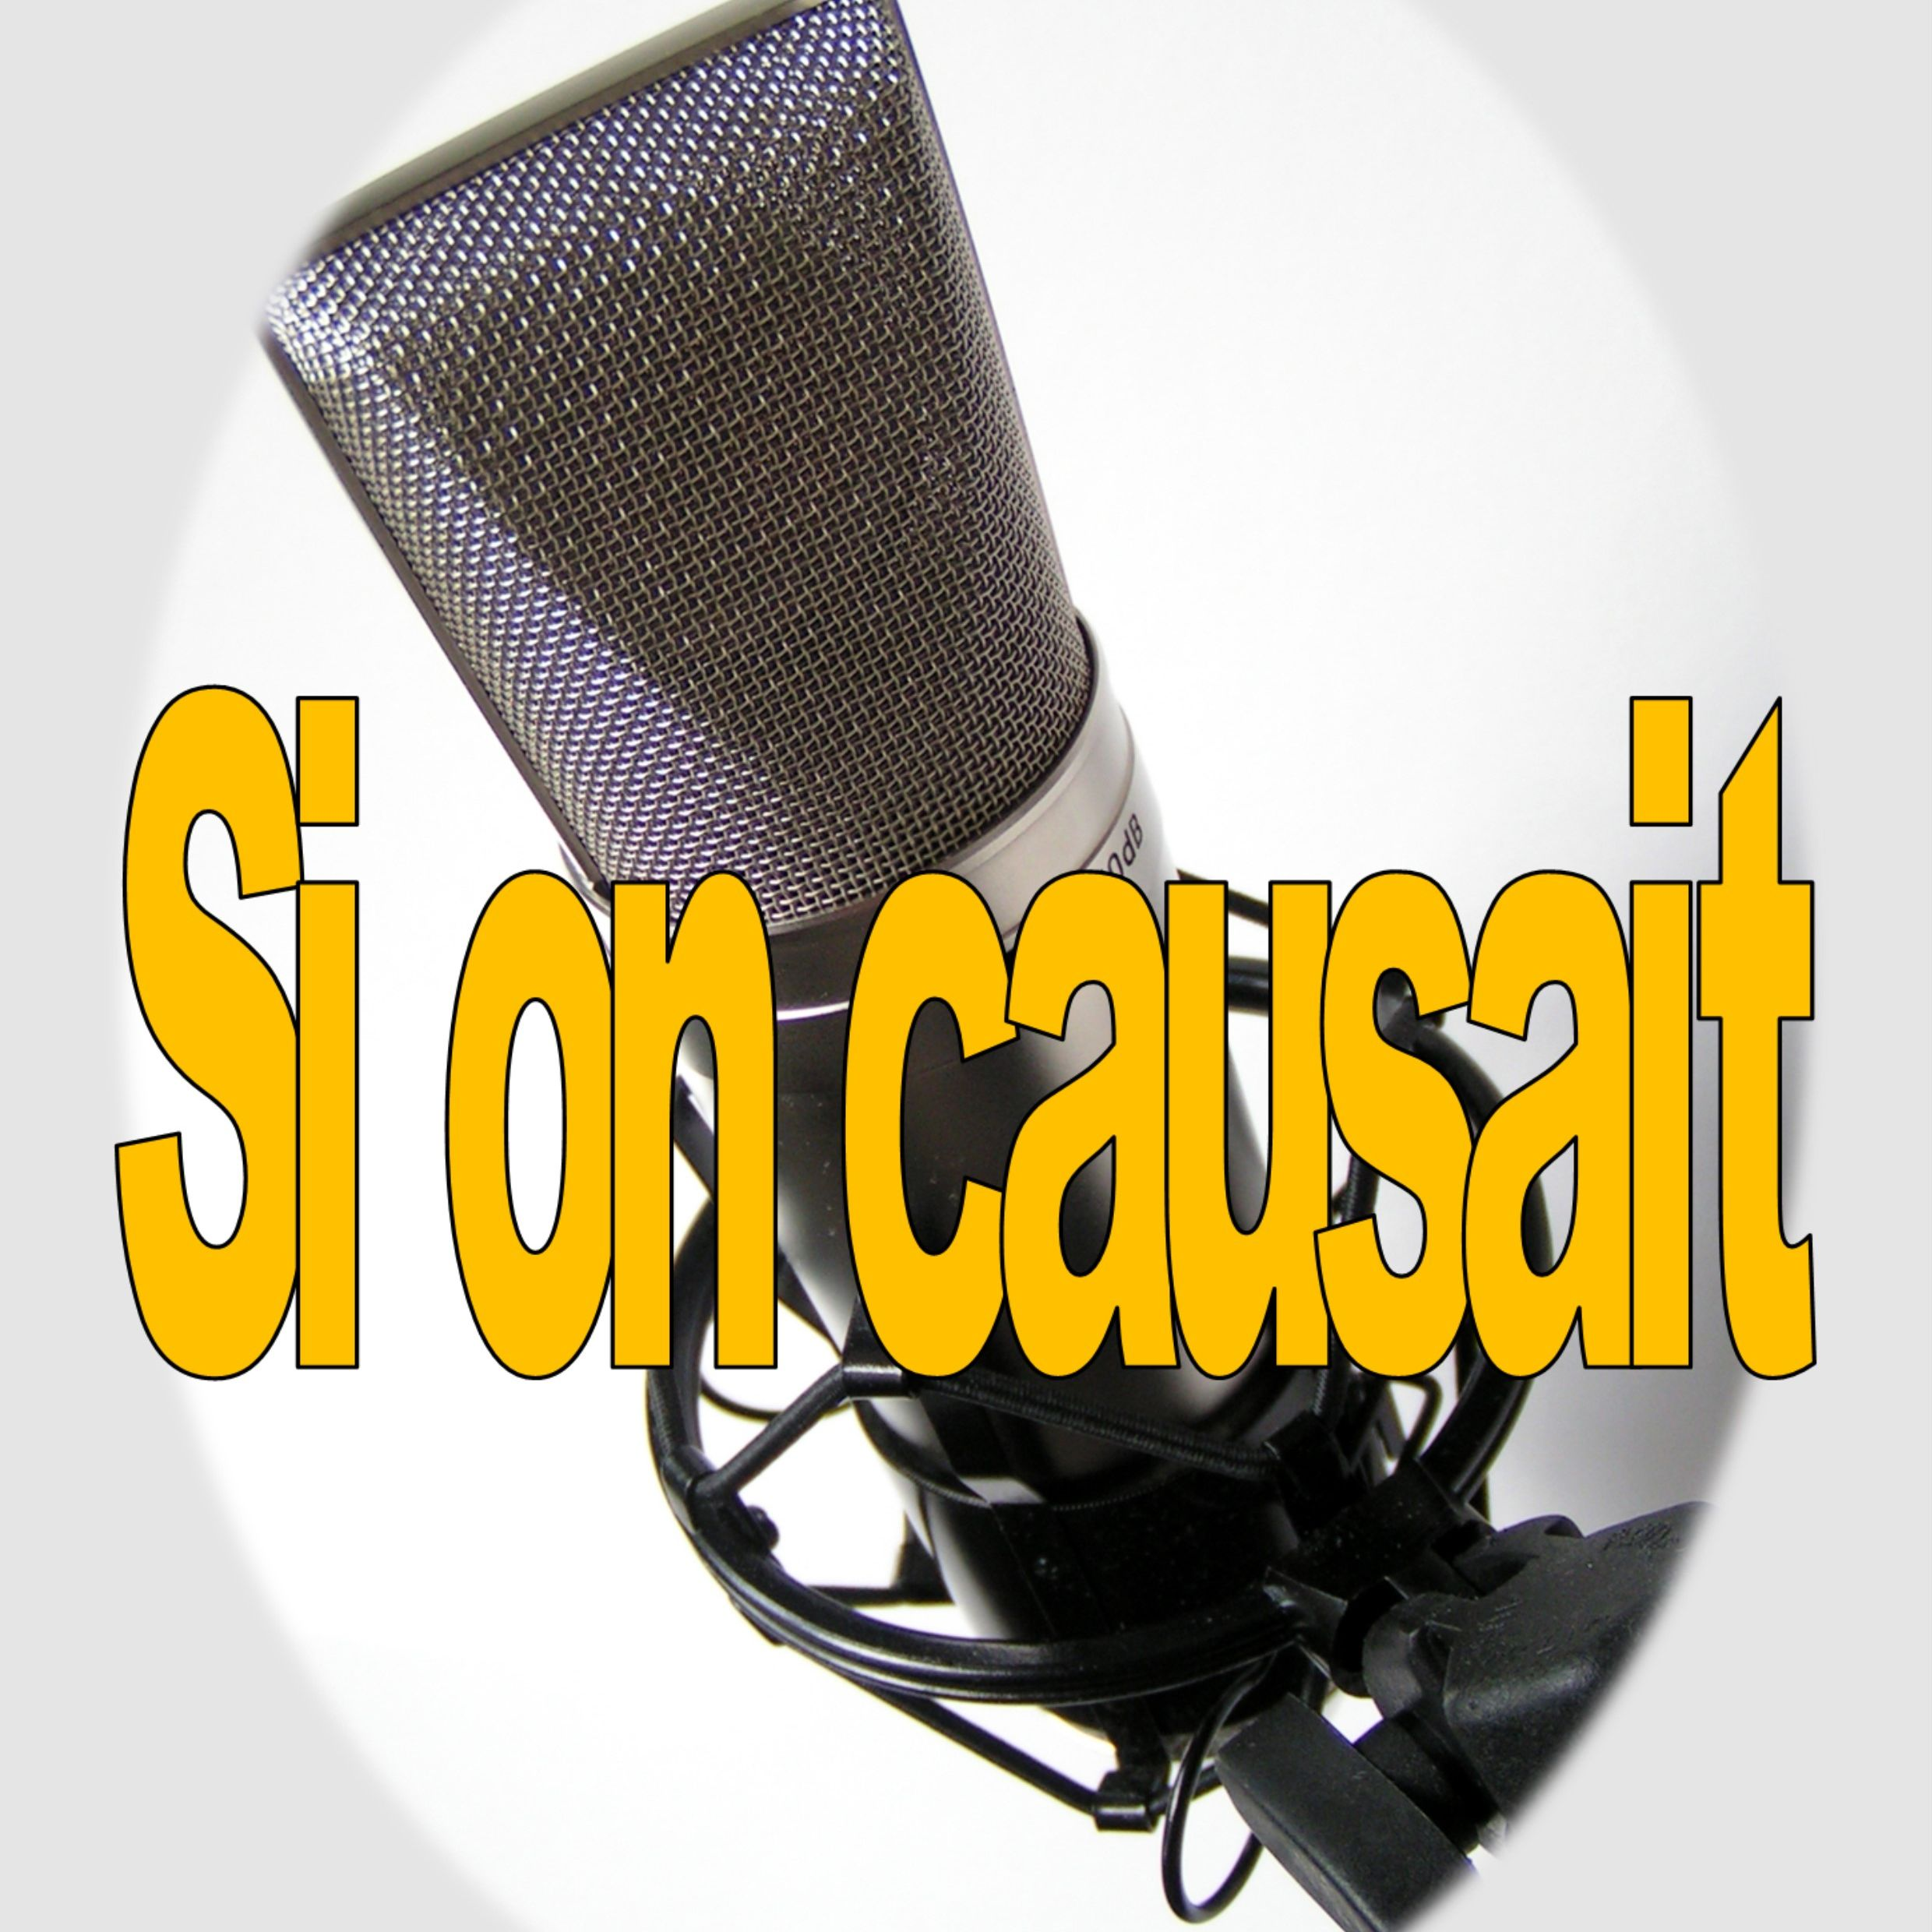 Si on causait